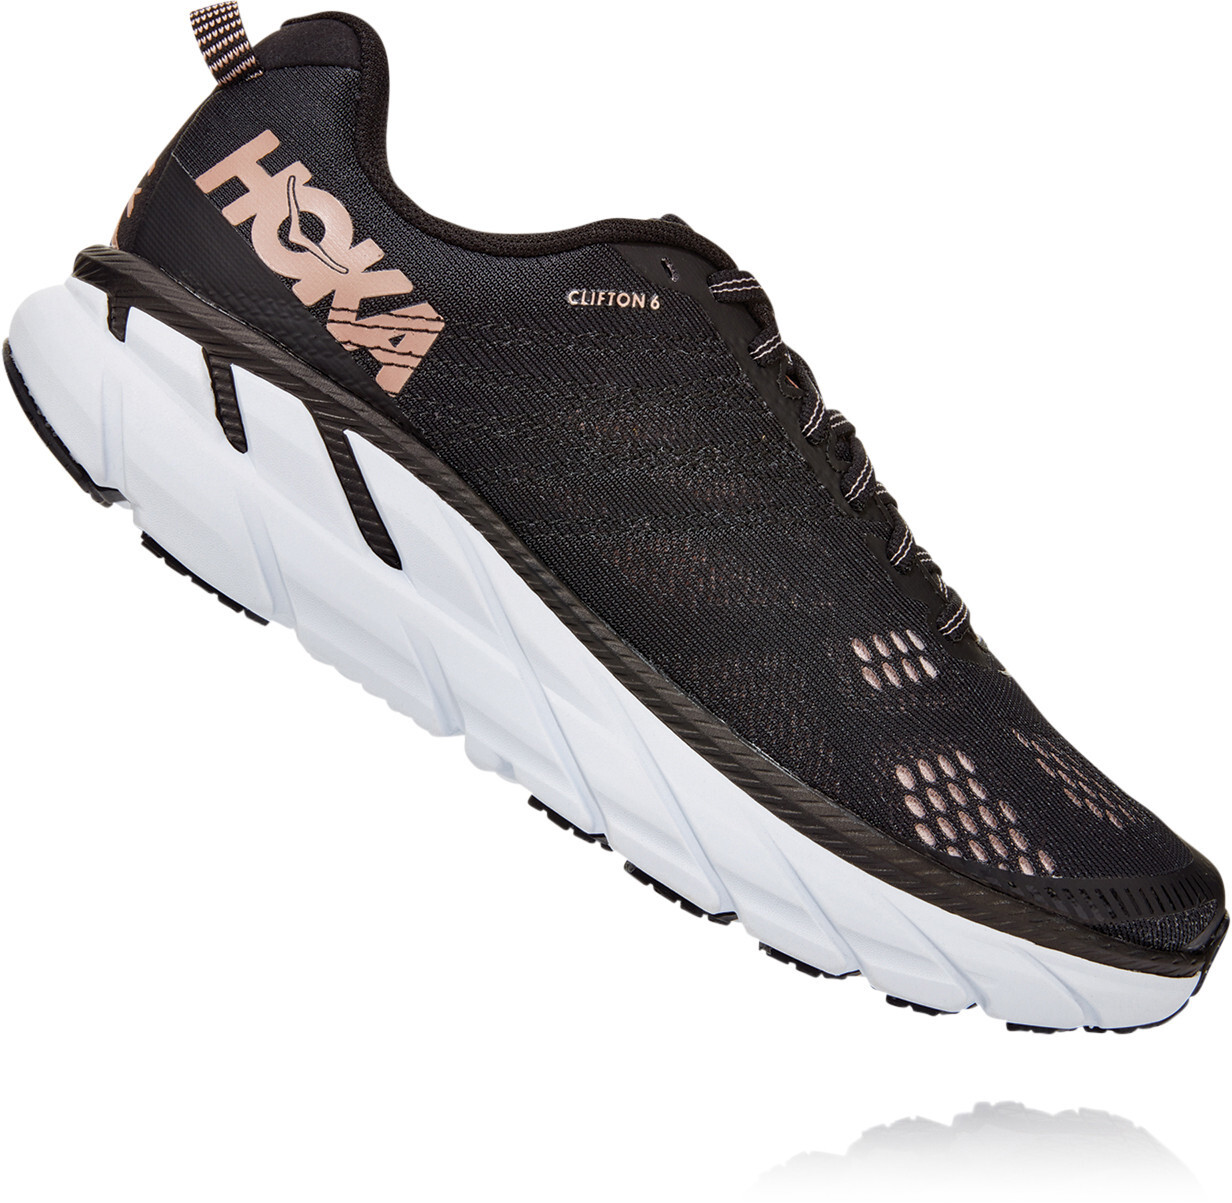 Hoka One One Clifton 6 Shoes Women blackrose gold